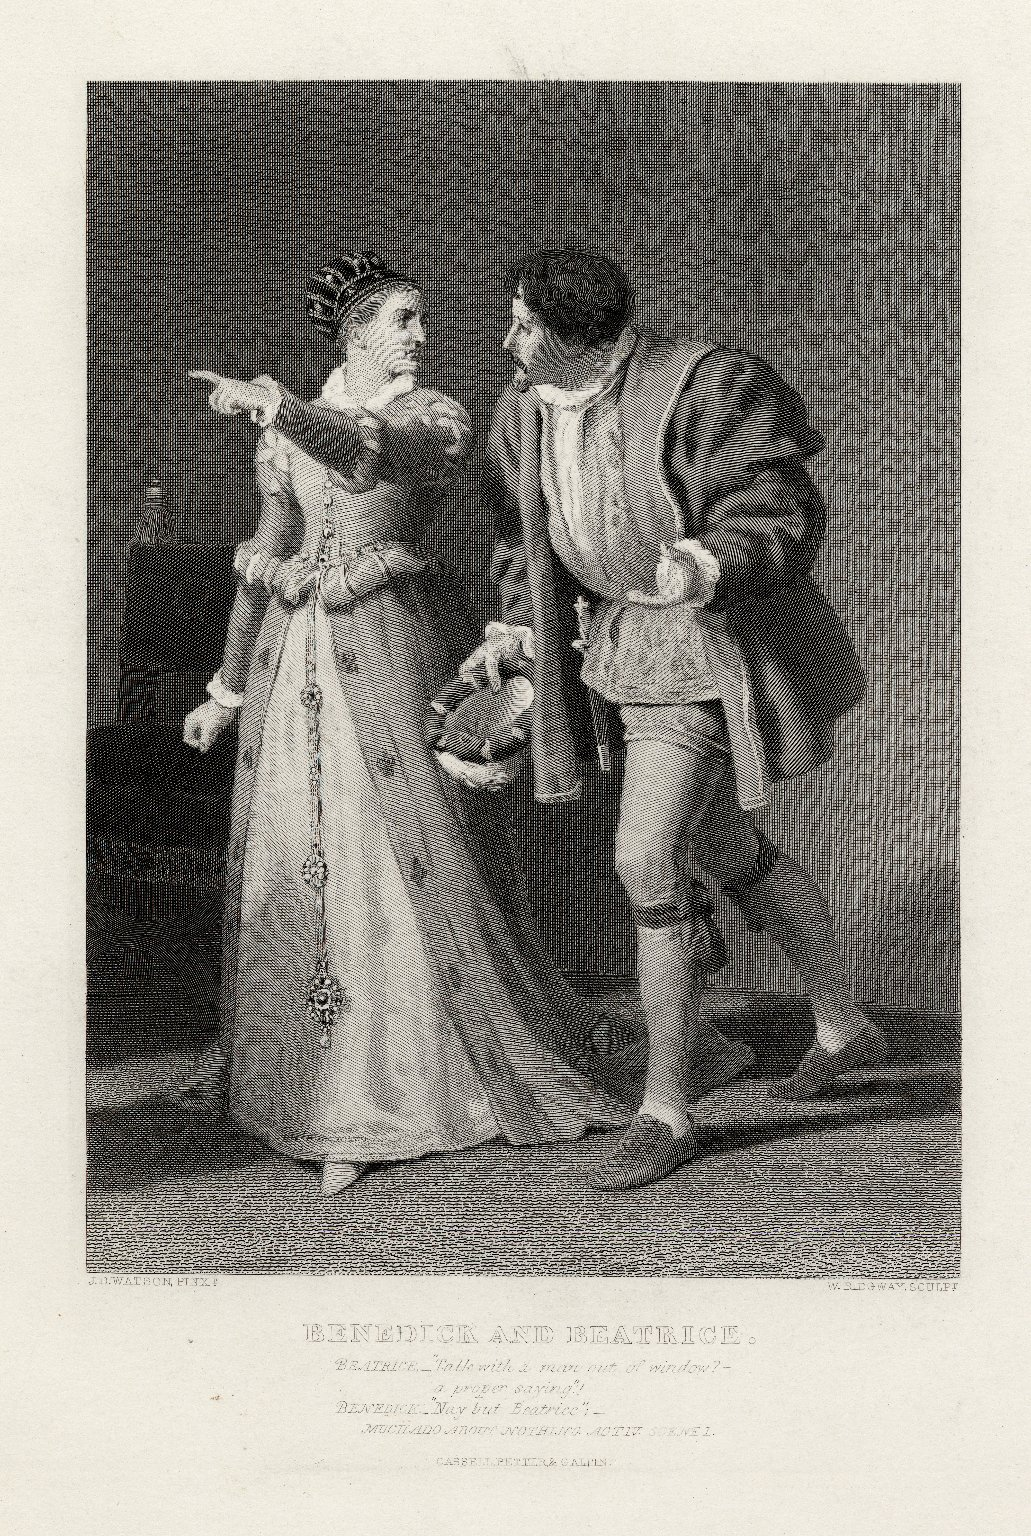 Benedick and Beatrice ... Much ado about nothing, act IV, scene 1 [graphic] / J.D. Watson, Pinxt. ; W. Ridgeway, Sculpt.